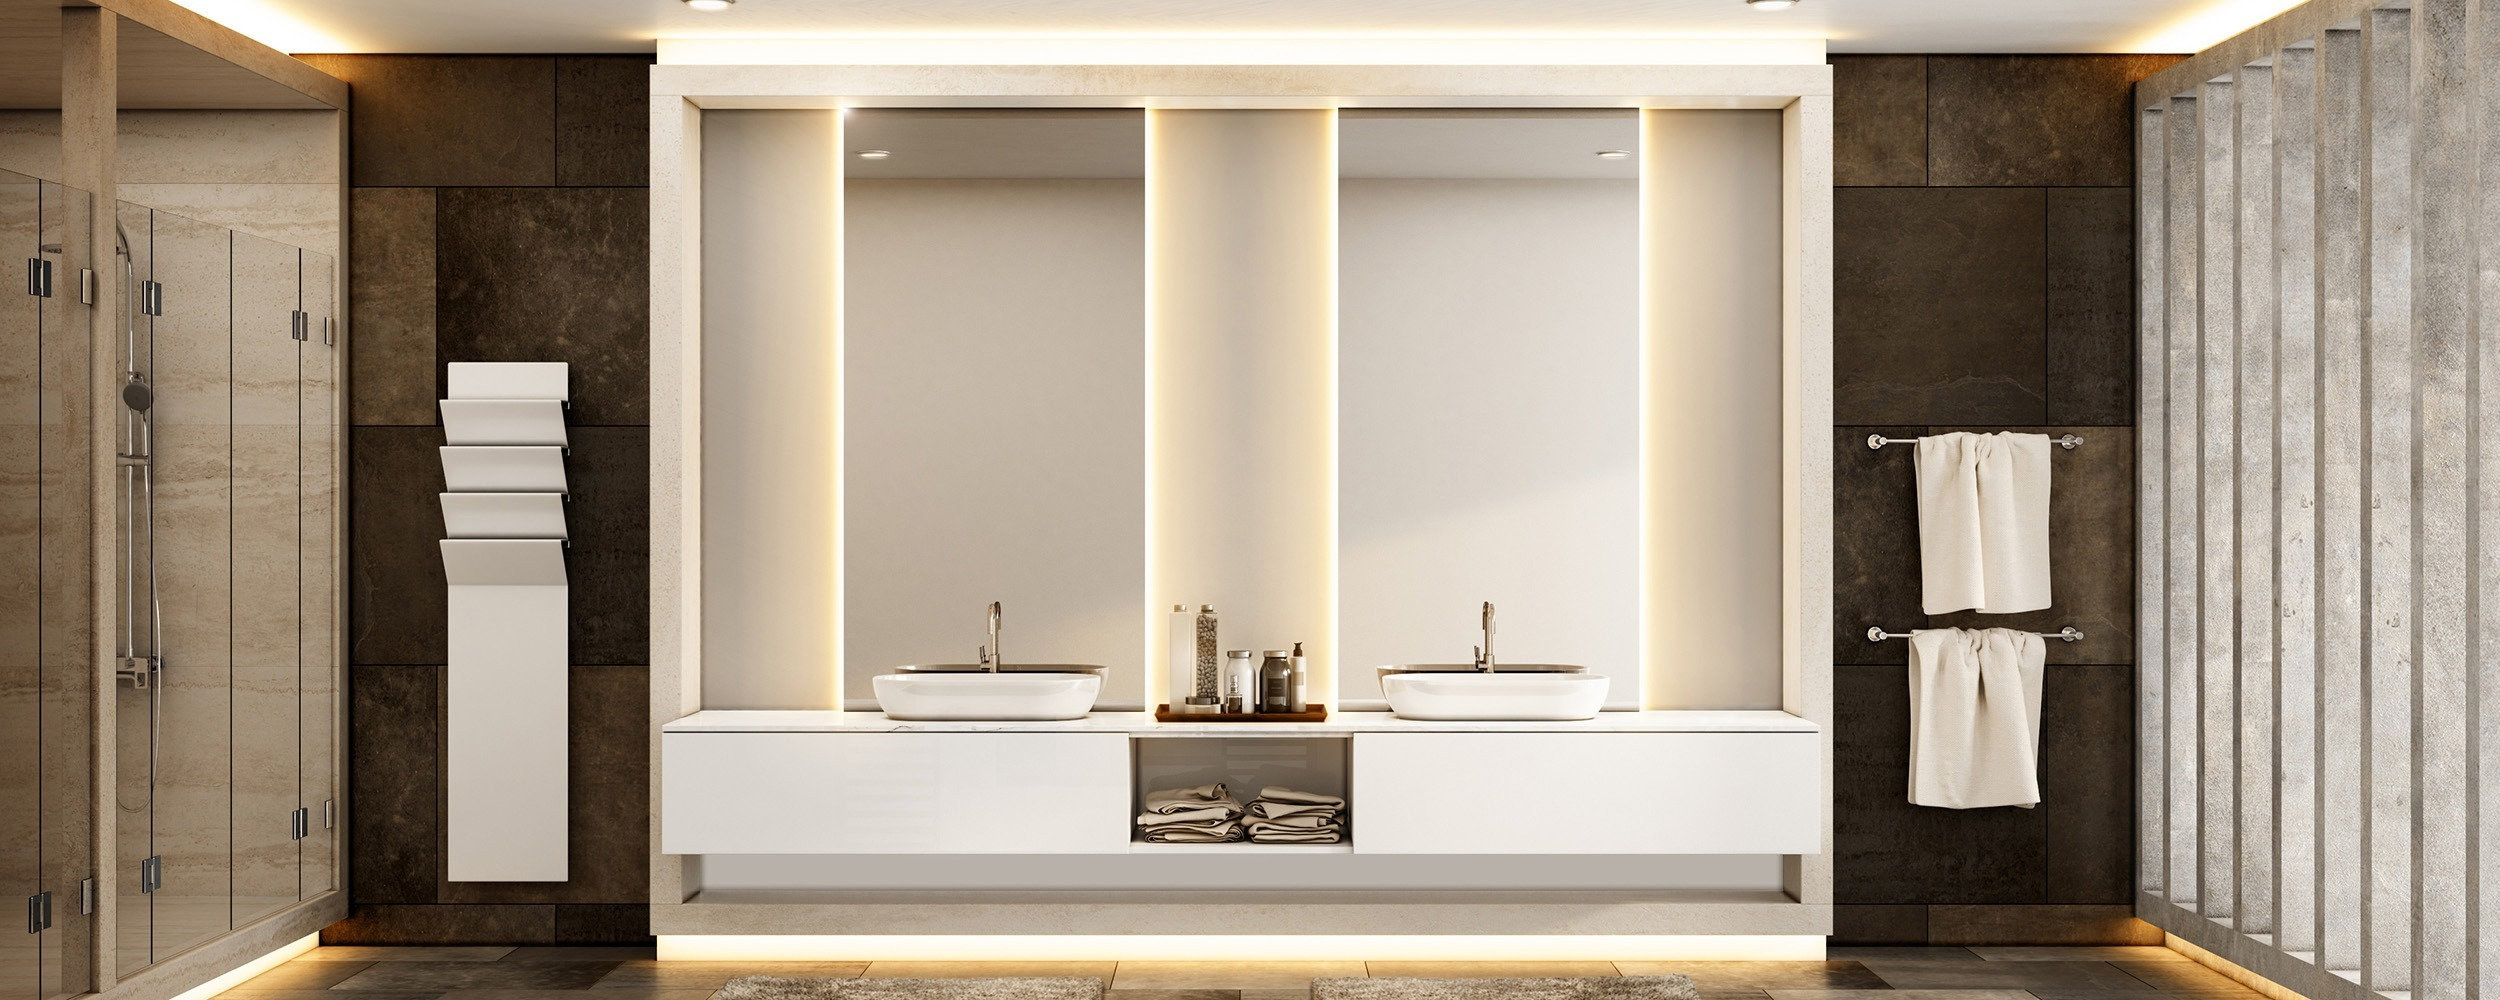 Double Sink Backlit Mirror by Grand Mirrors in a Spa Bathroom